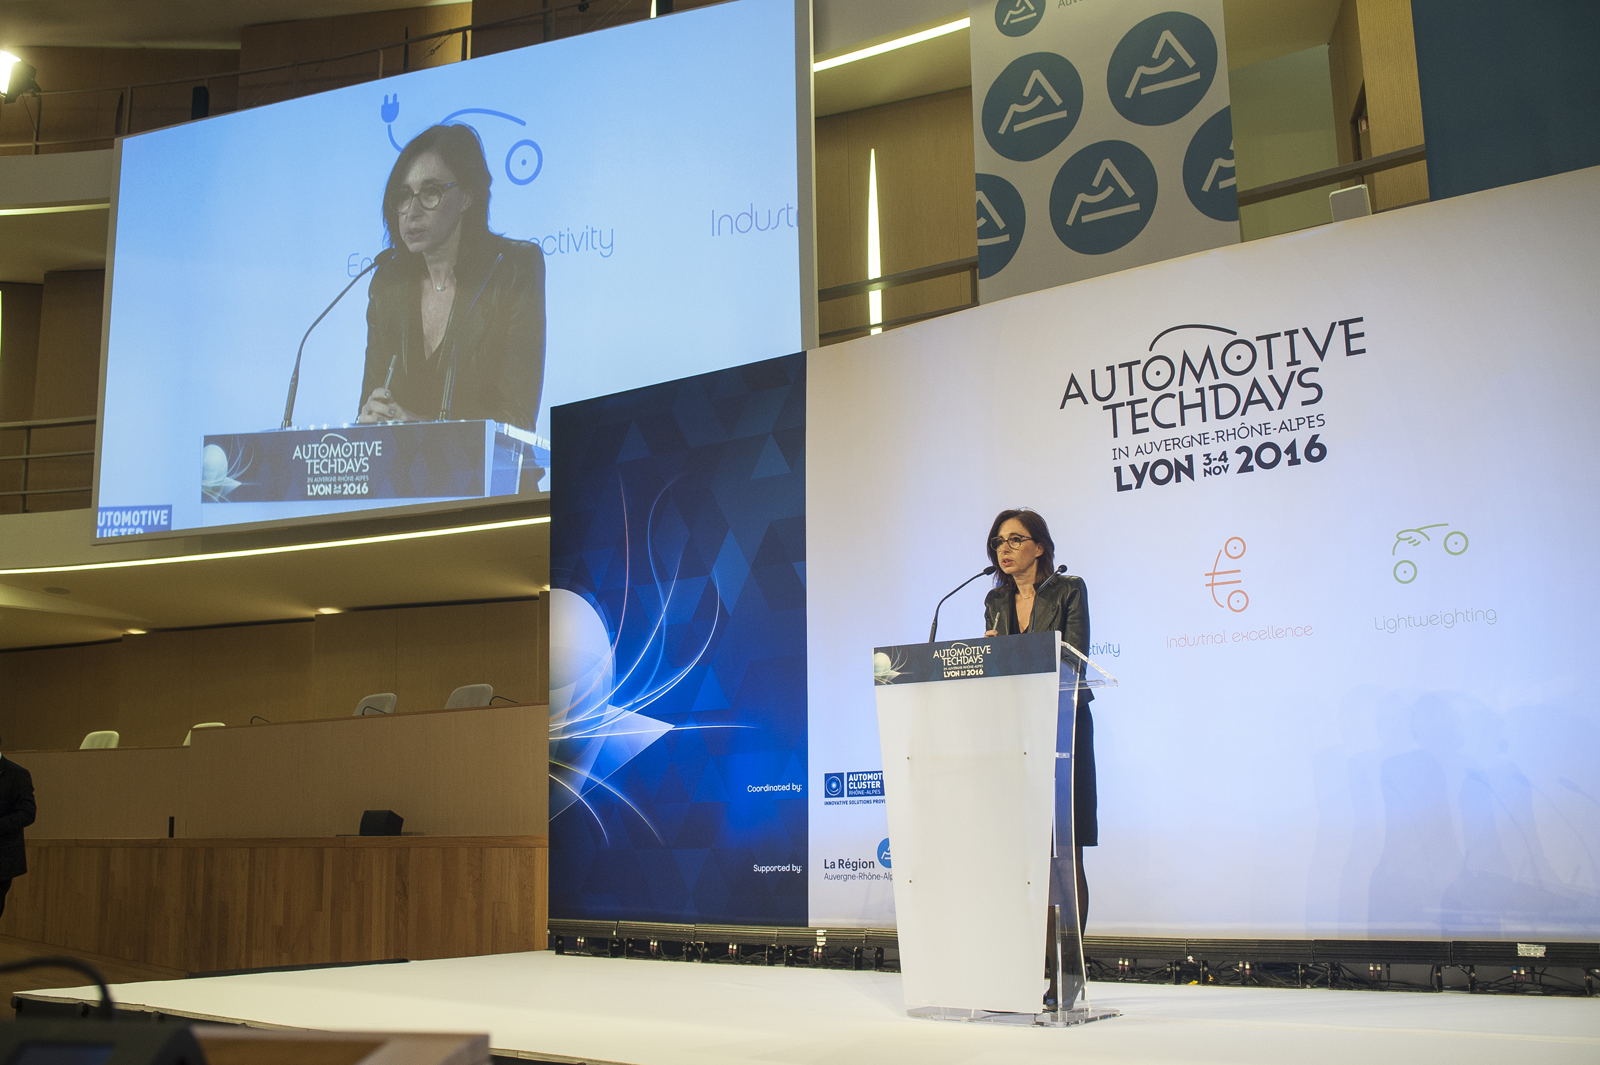 Automotive Tech Days 2016